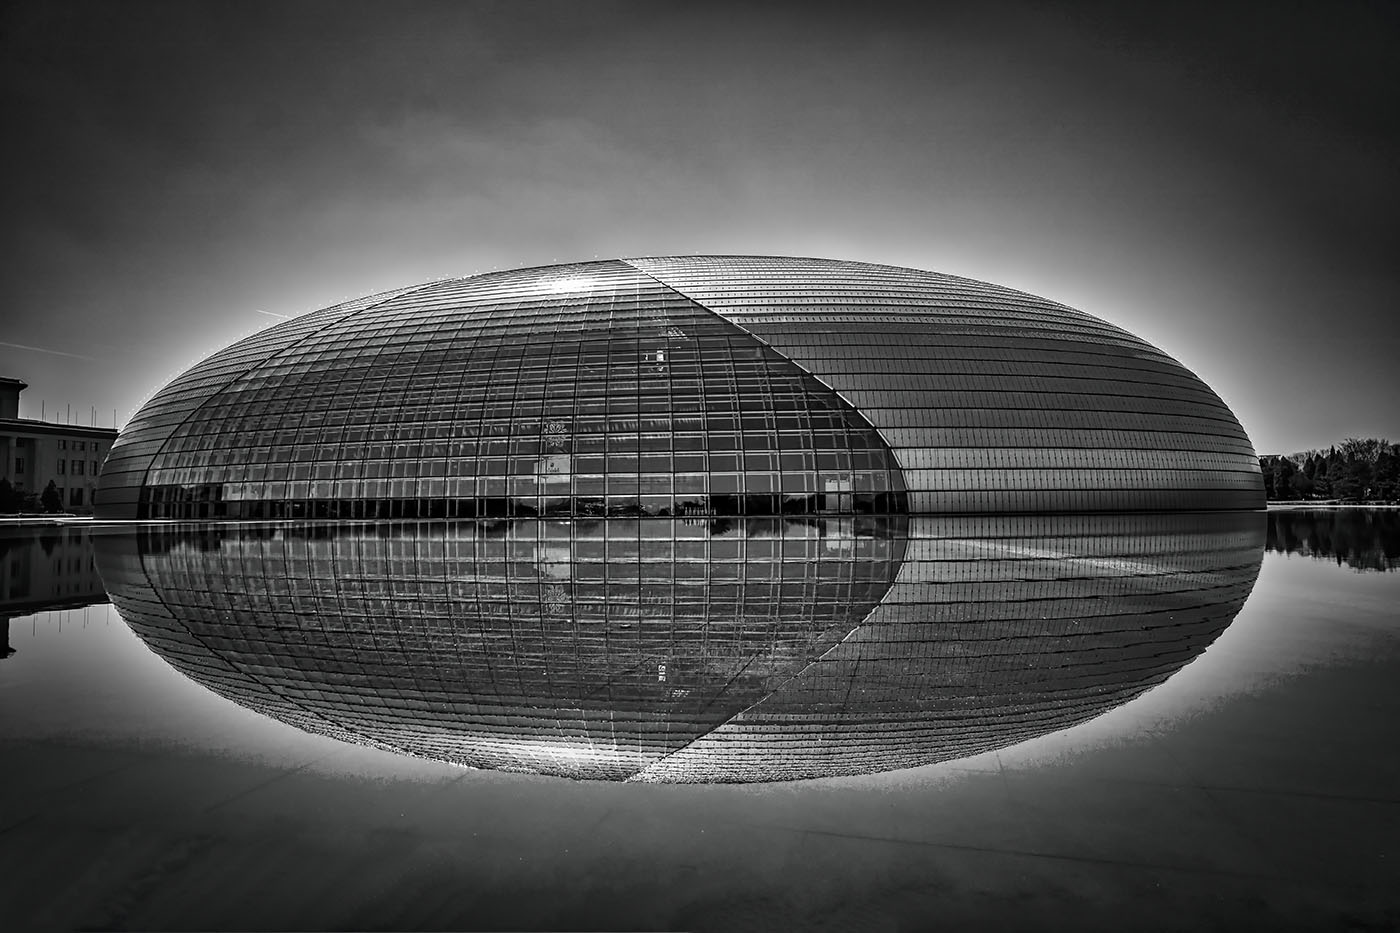 Carlos Esguerra_United States_Modern Architecture in China_01.jpg